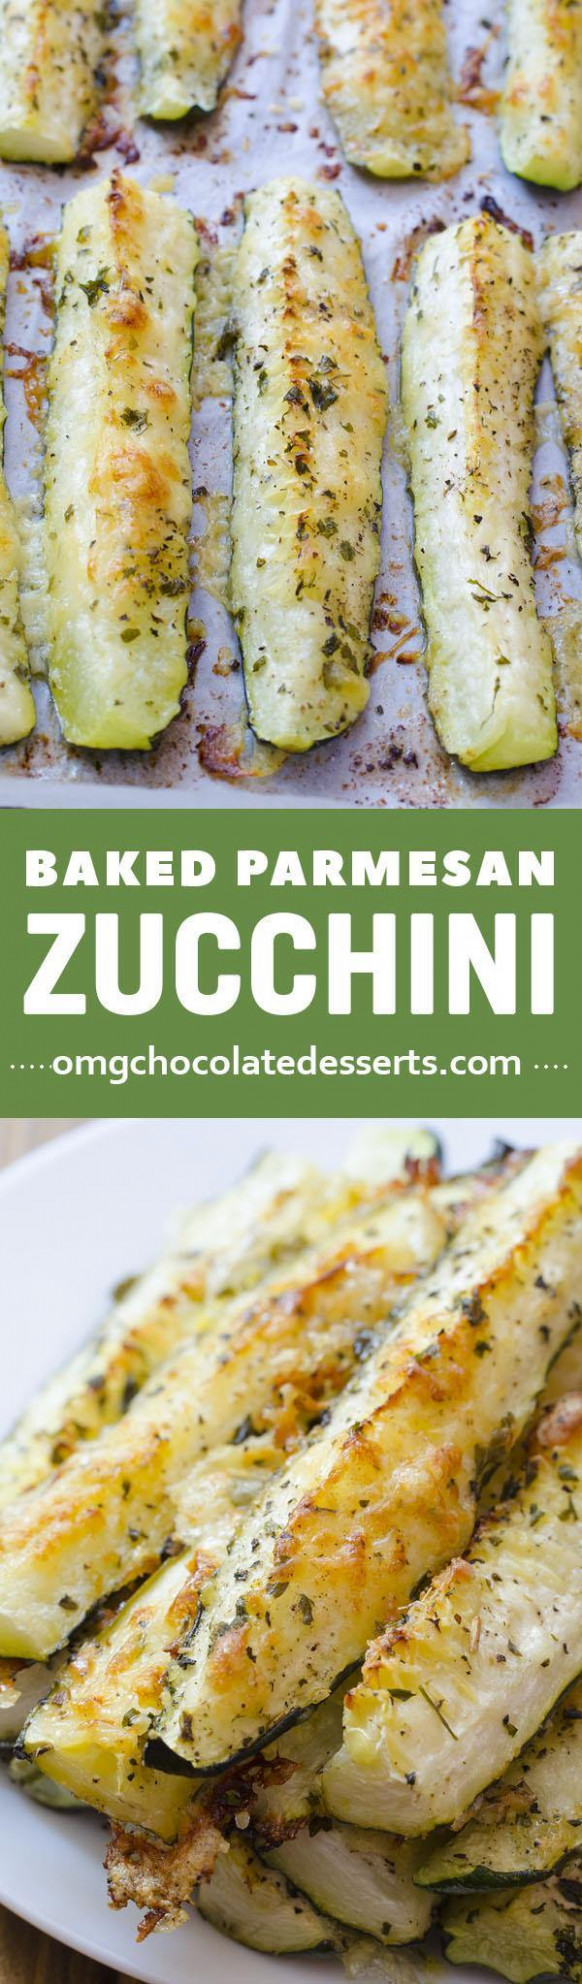 Baked Parmesan Zucchini | Easy Vegetable Side Dish - baked zucchini recipes healthy